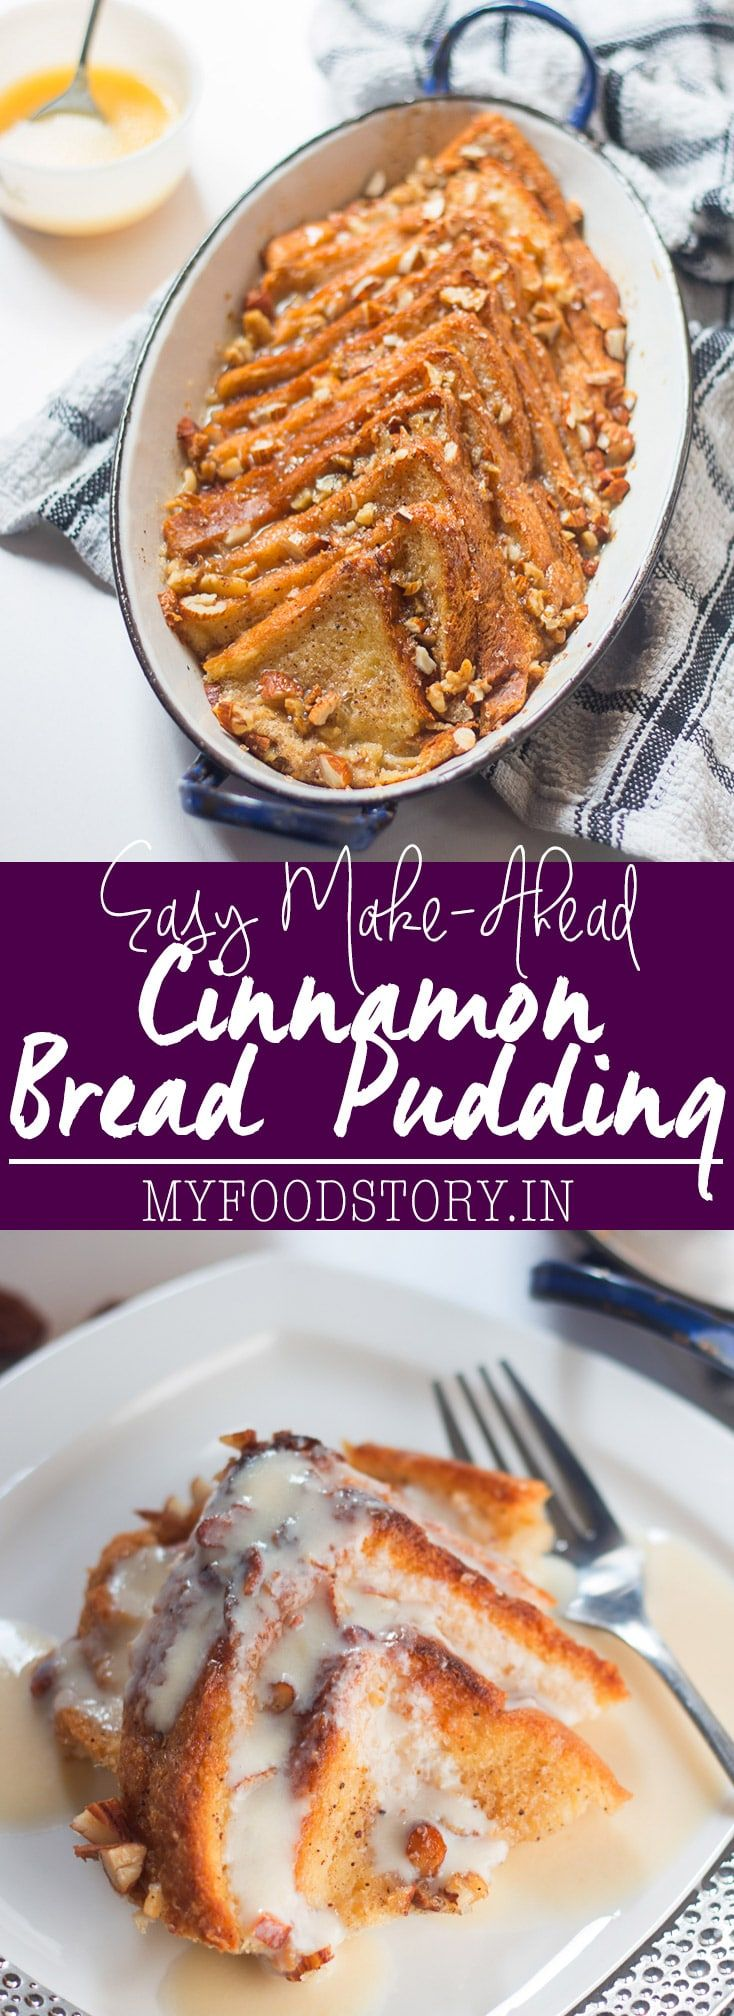 Really easy bread pudding recipe with rum custard sauce is the perfect make ahead dessert for a crowd. Great way to use stale bread too!